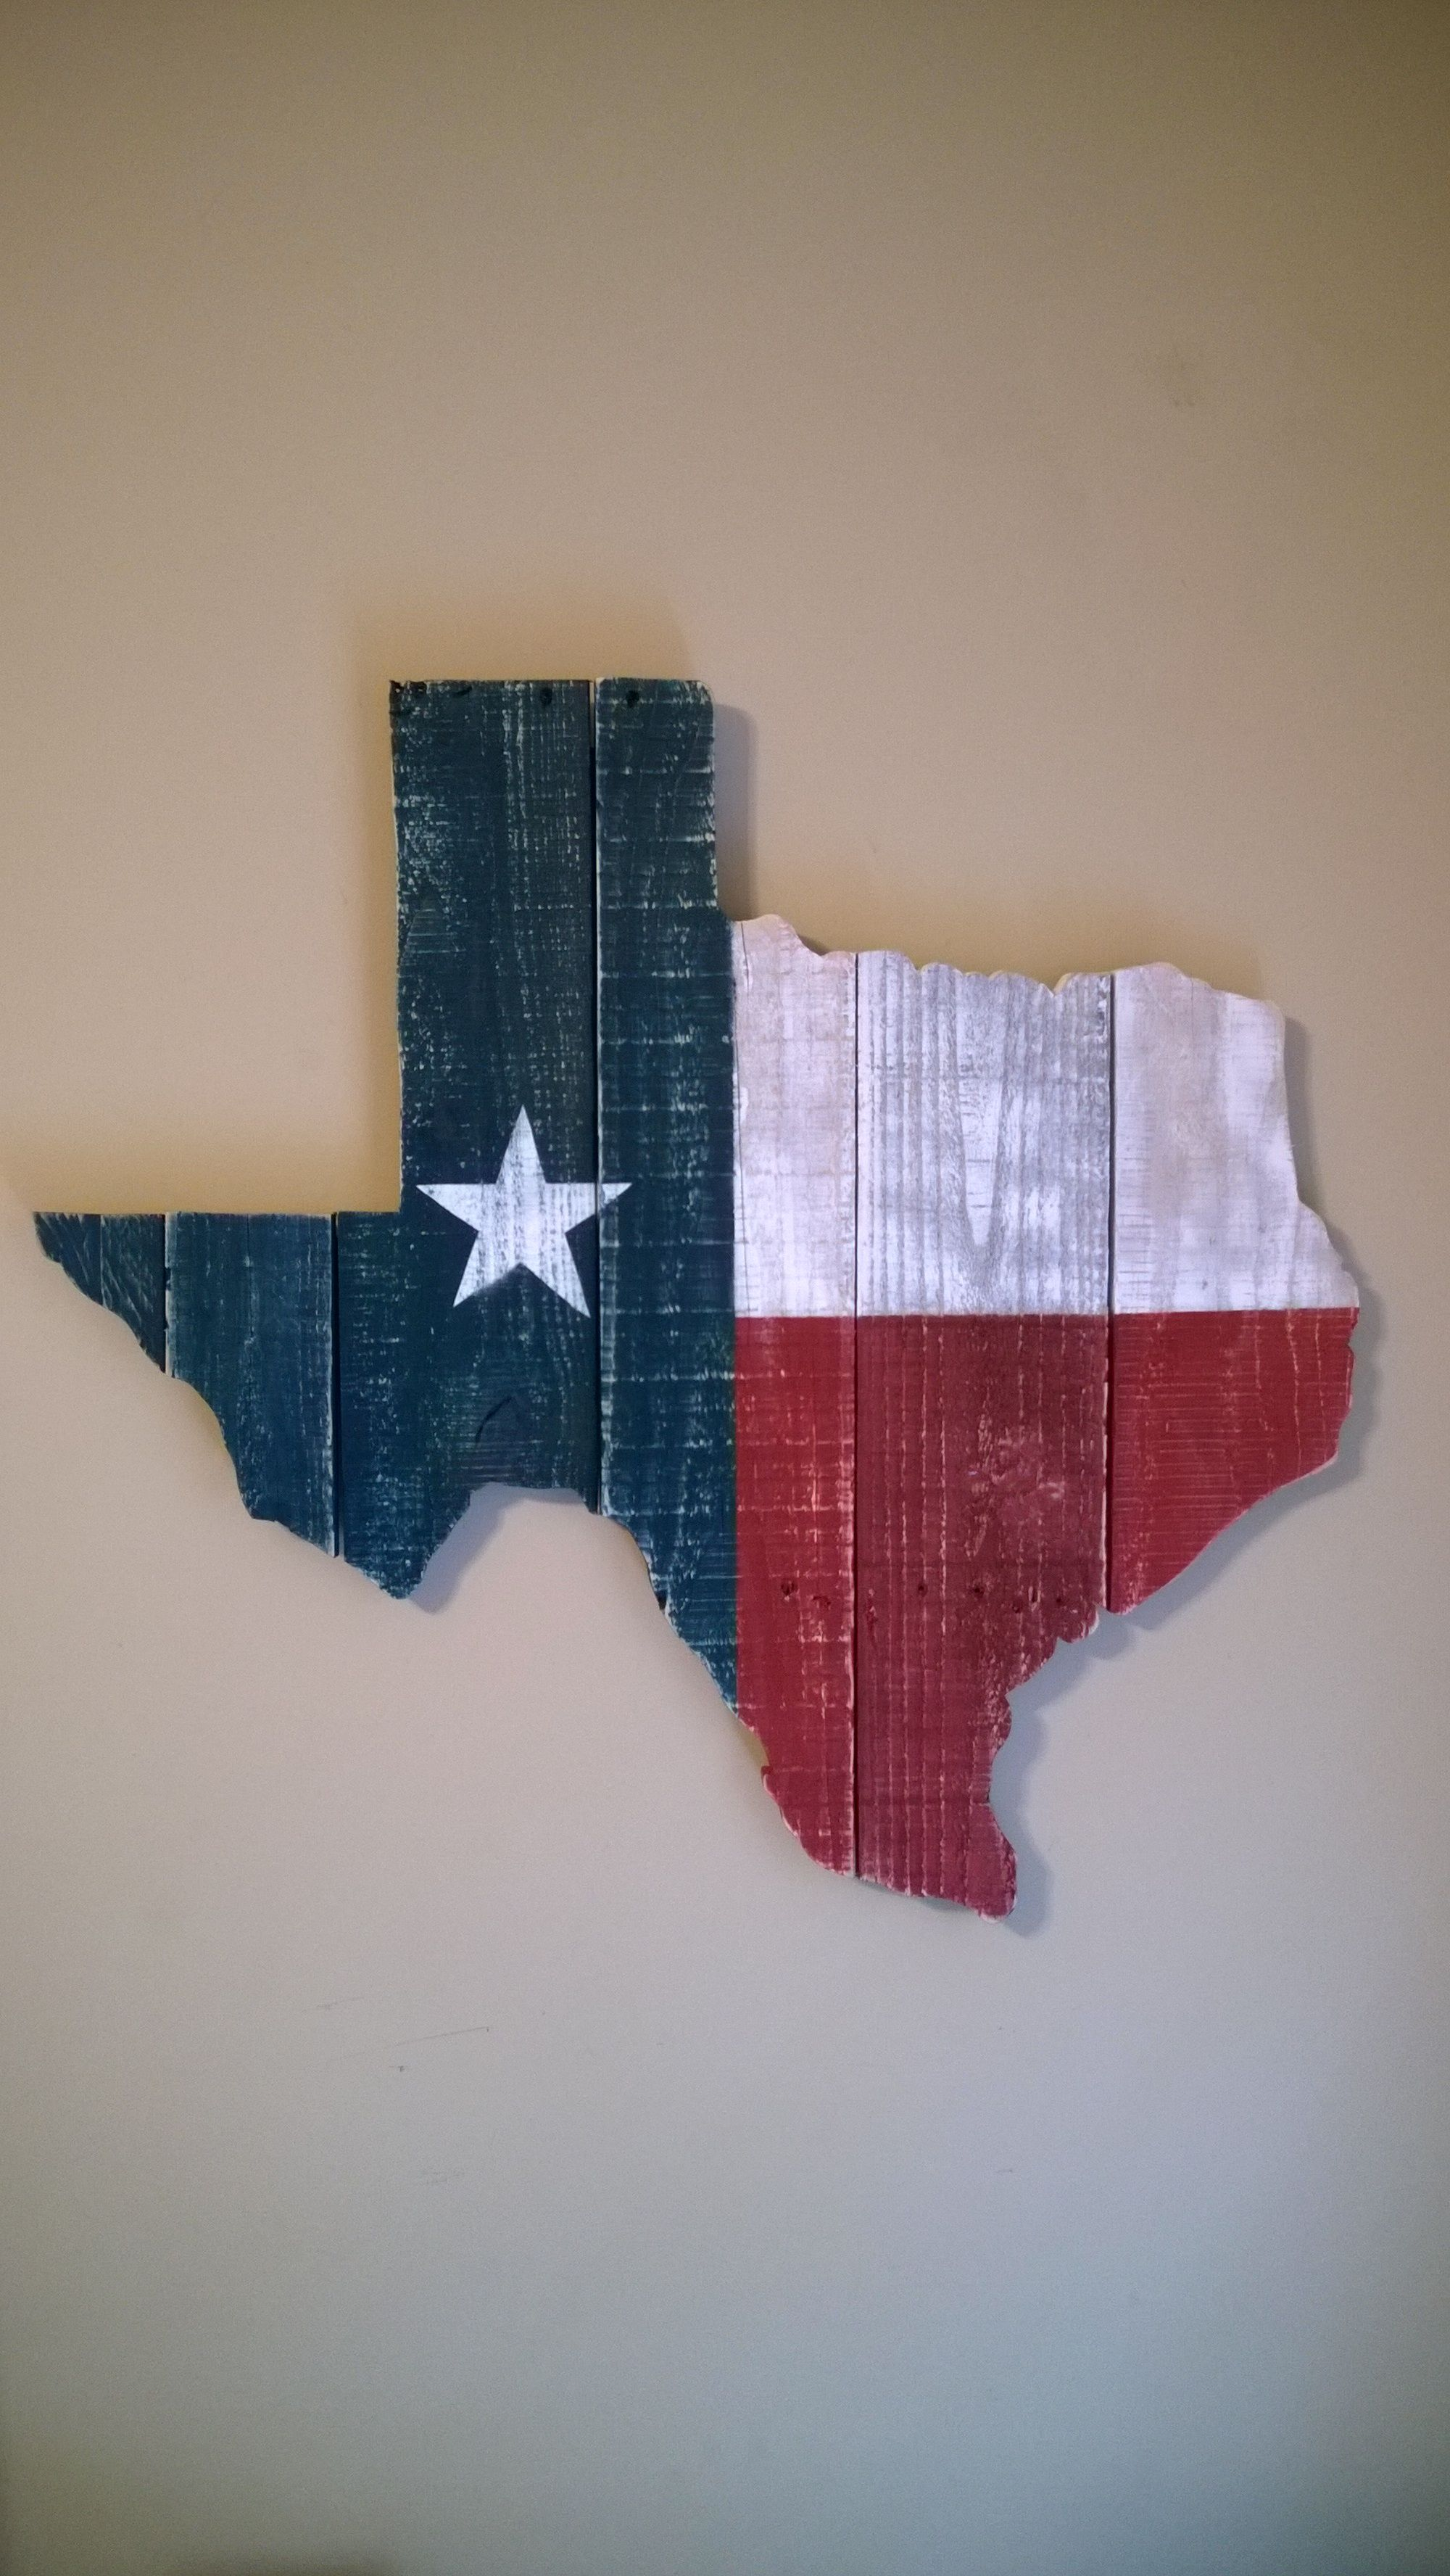 Wedding decorations using pallets october 2018 Texas State Flag wall hanging Made from reclaimed pallet wood